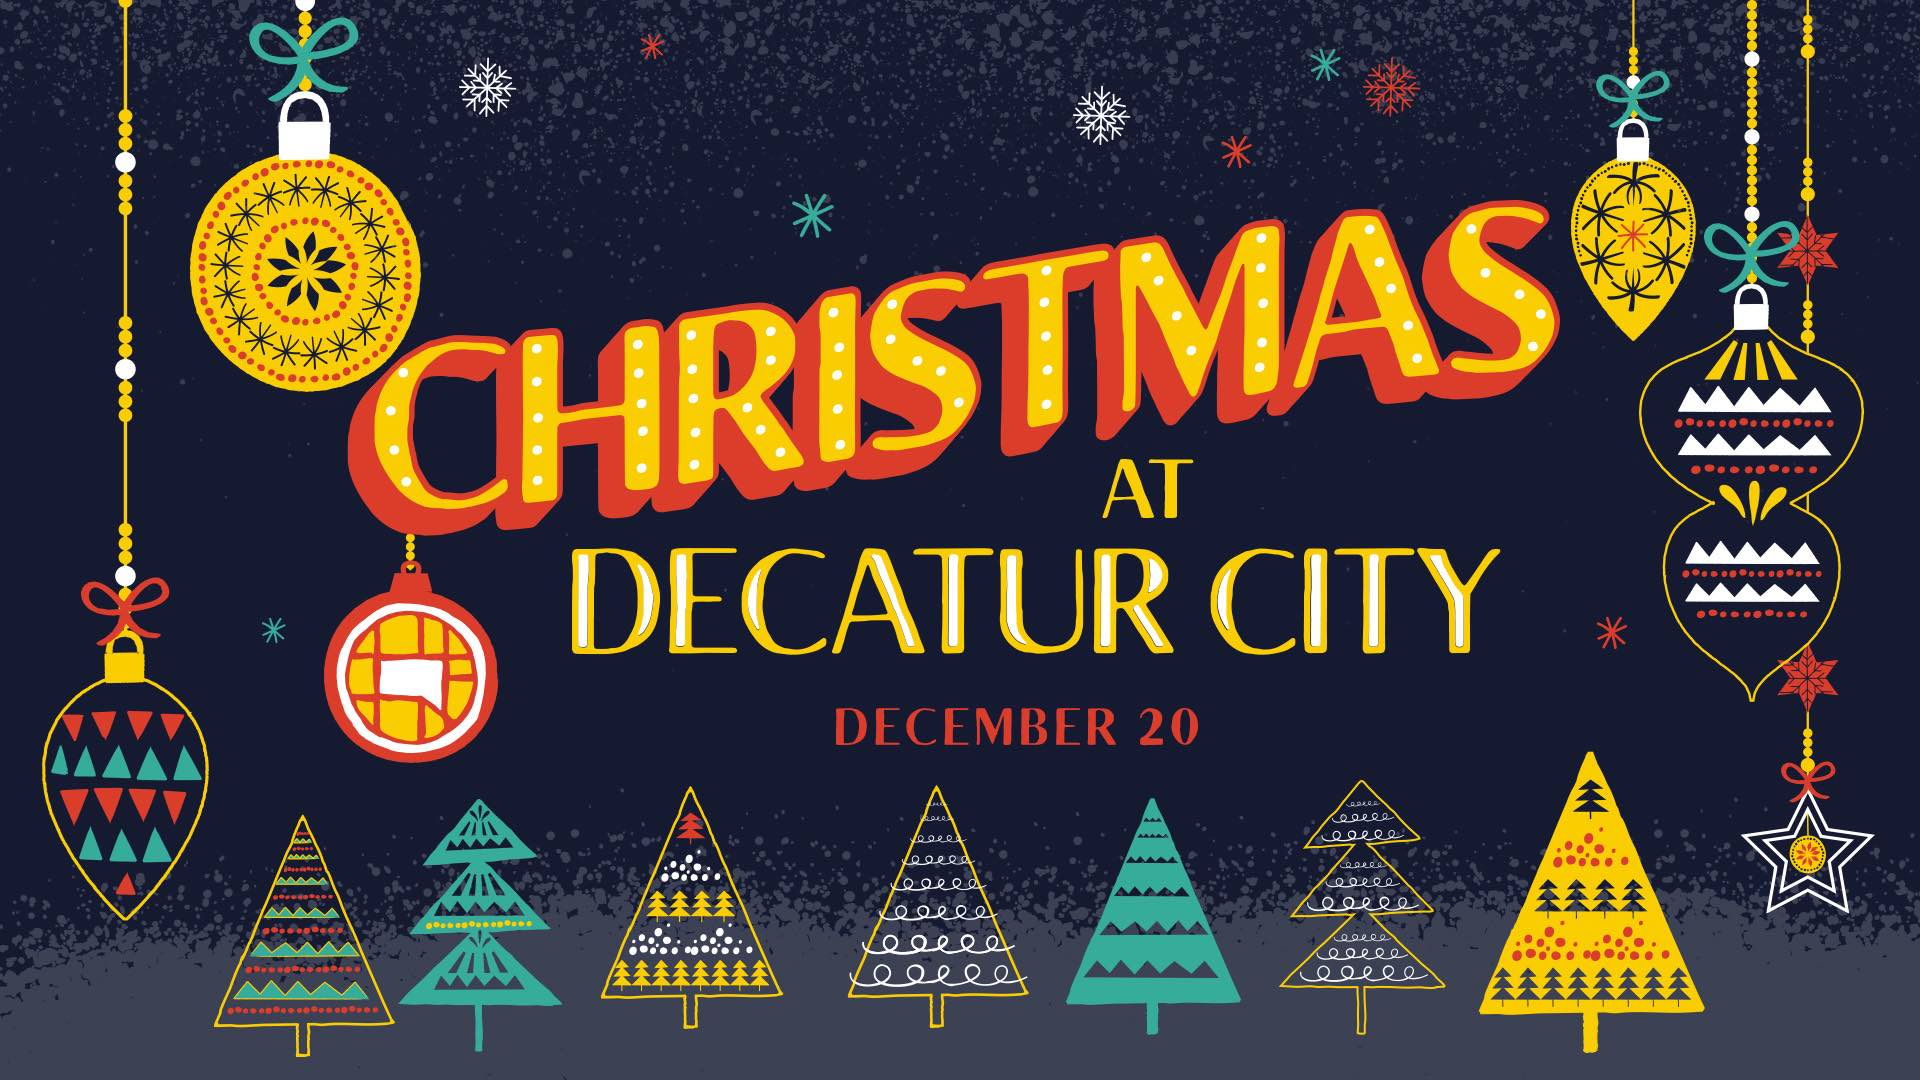 Christmas at Decatur City